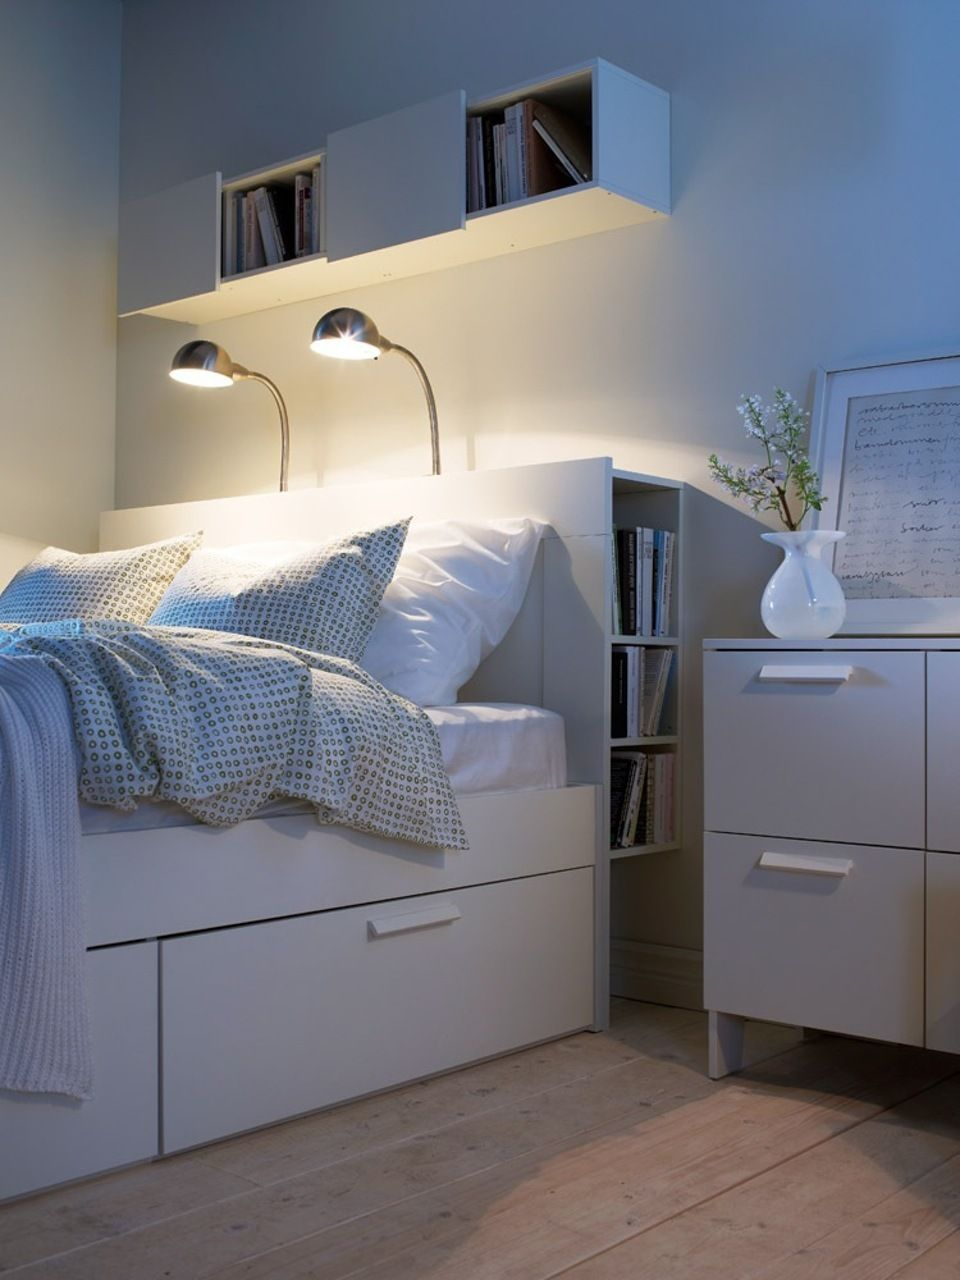 Wooden headboard from Ikea with built in storage